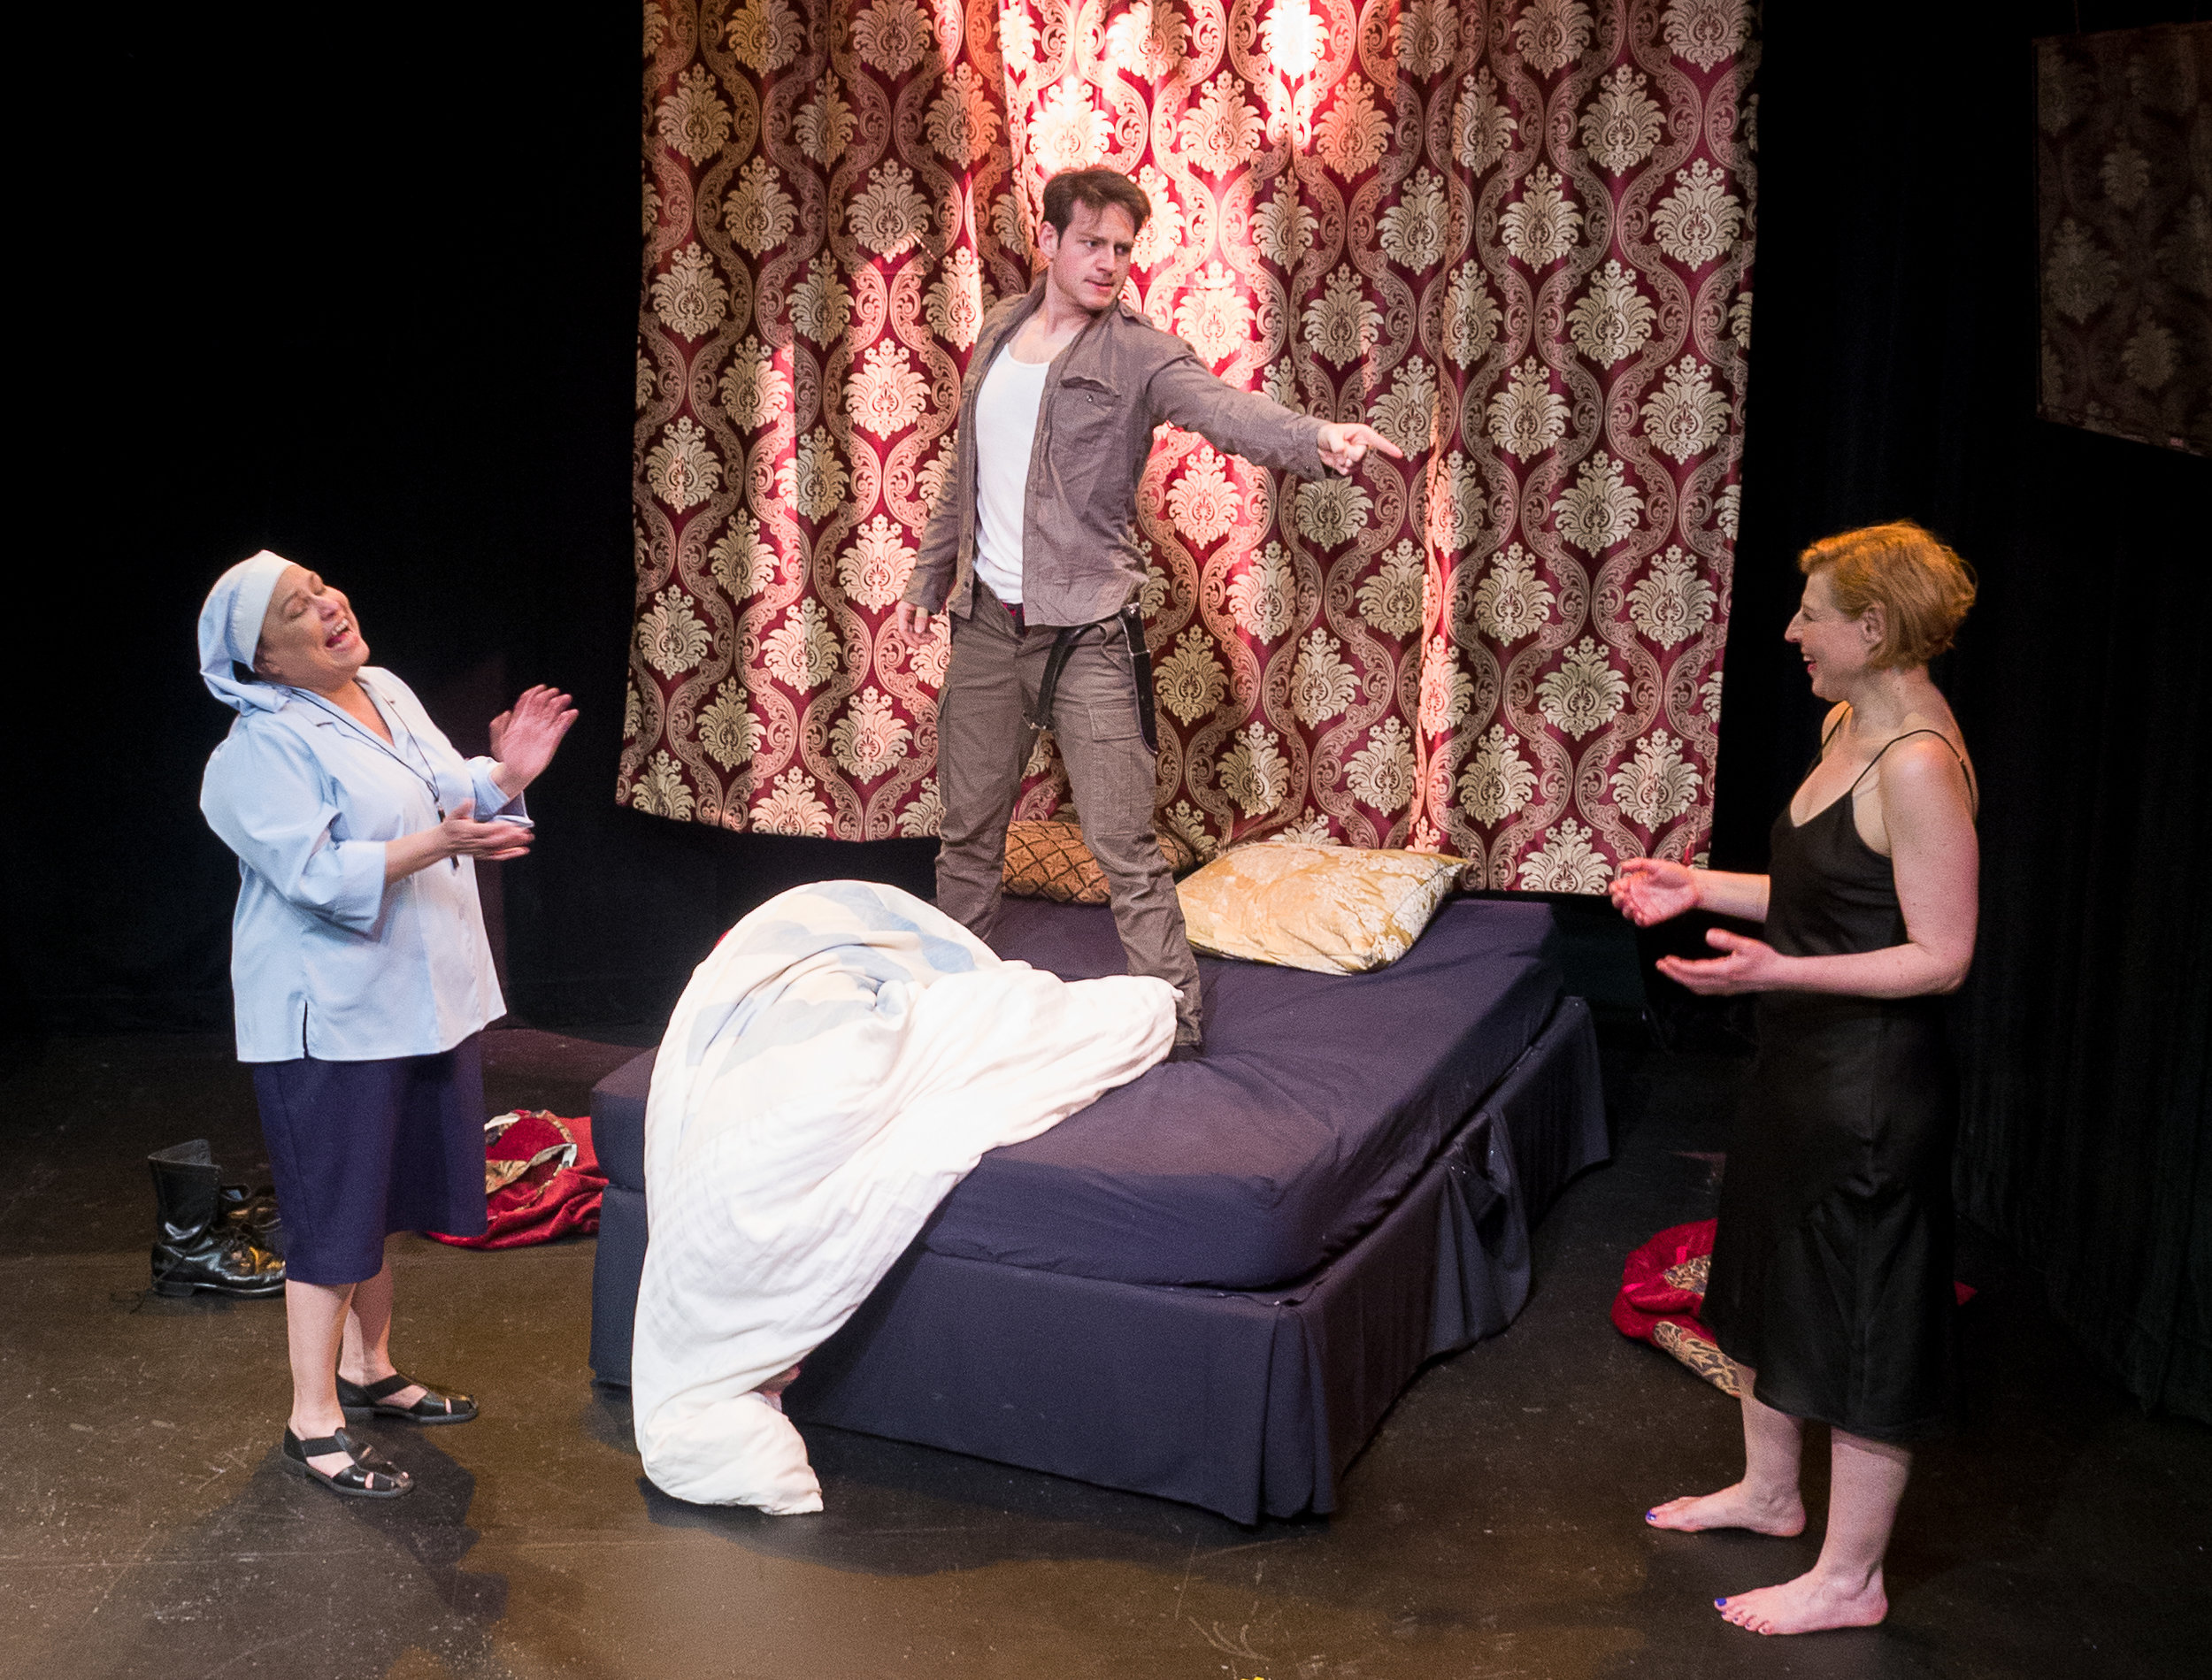 Left to Right: Martha Chaves as Sister Bibianna; Dewey Stewart as Giovanni; Françoise Balthazar as Lucrezia Borgia. Set and costumes by Jan Venus; lighting design by Waleed Ansari. Photography by Rene Stakenborg.